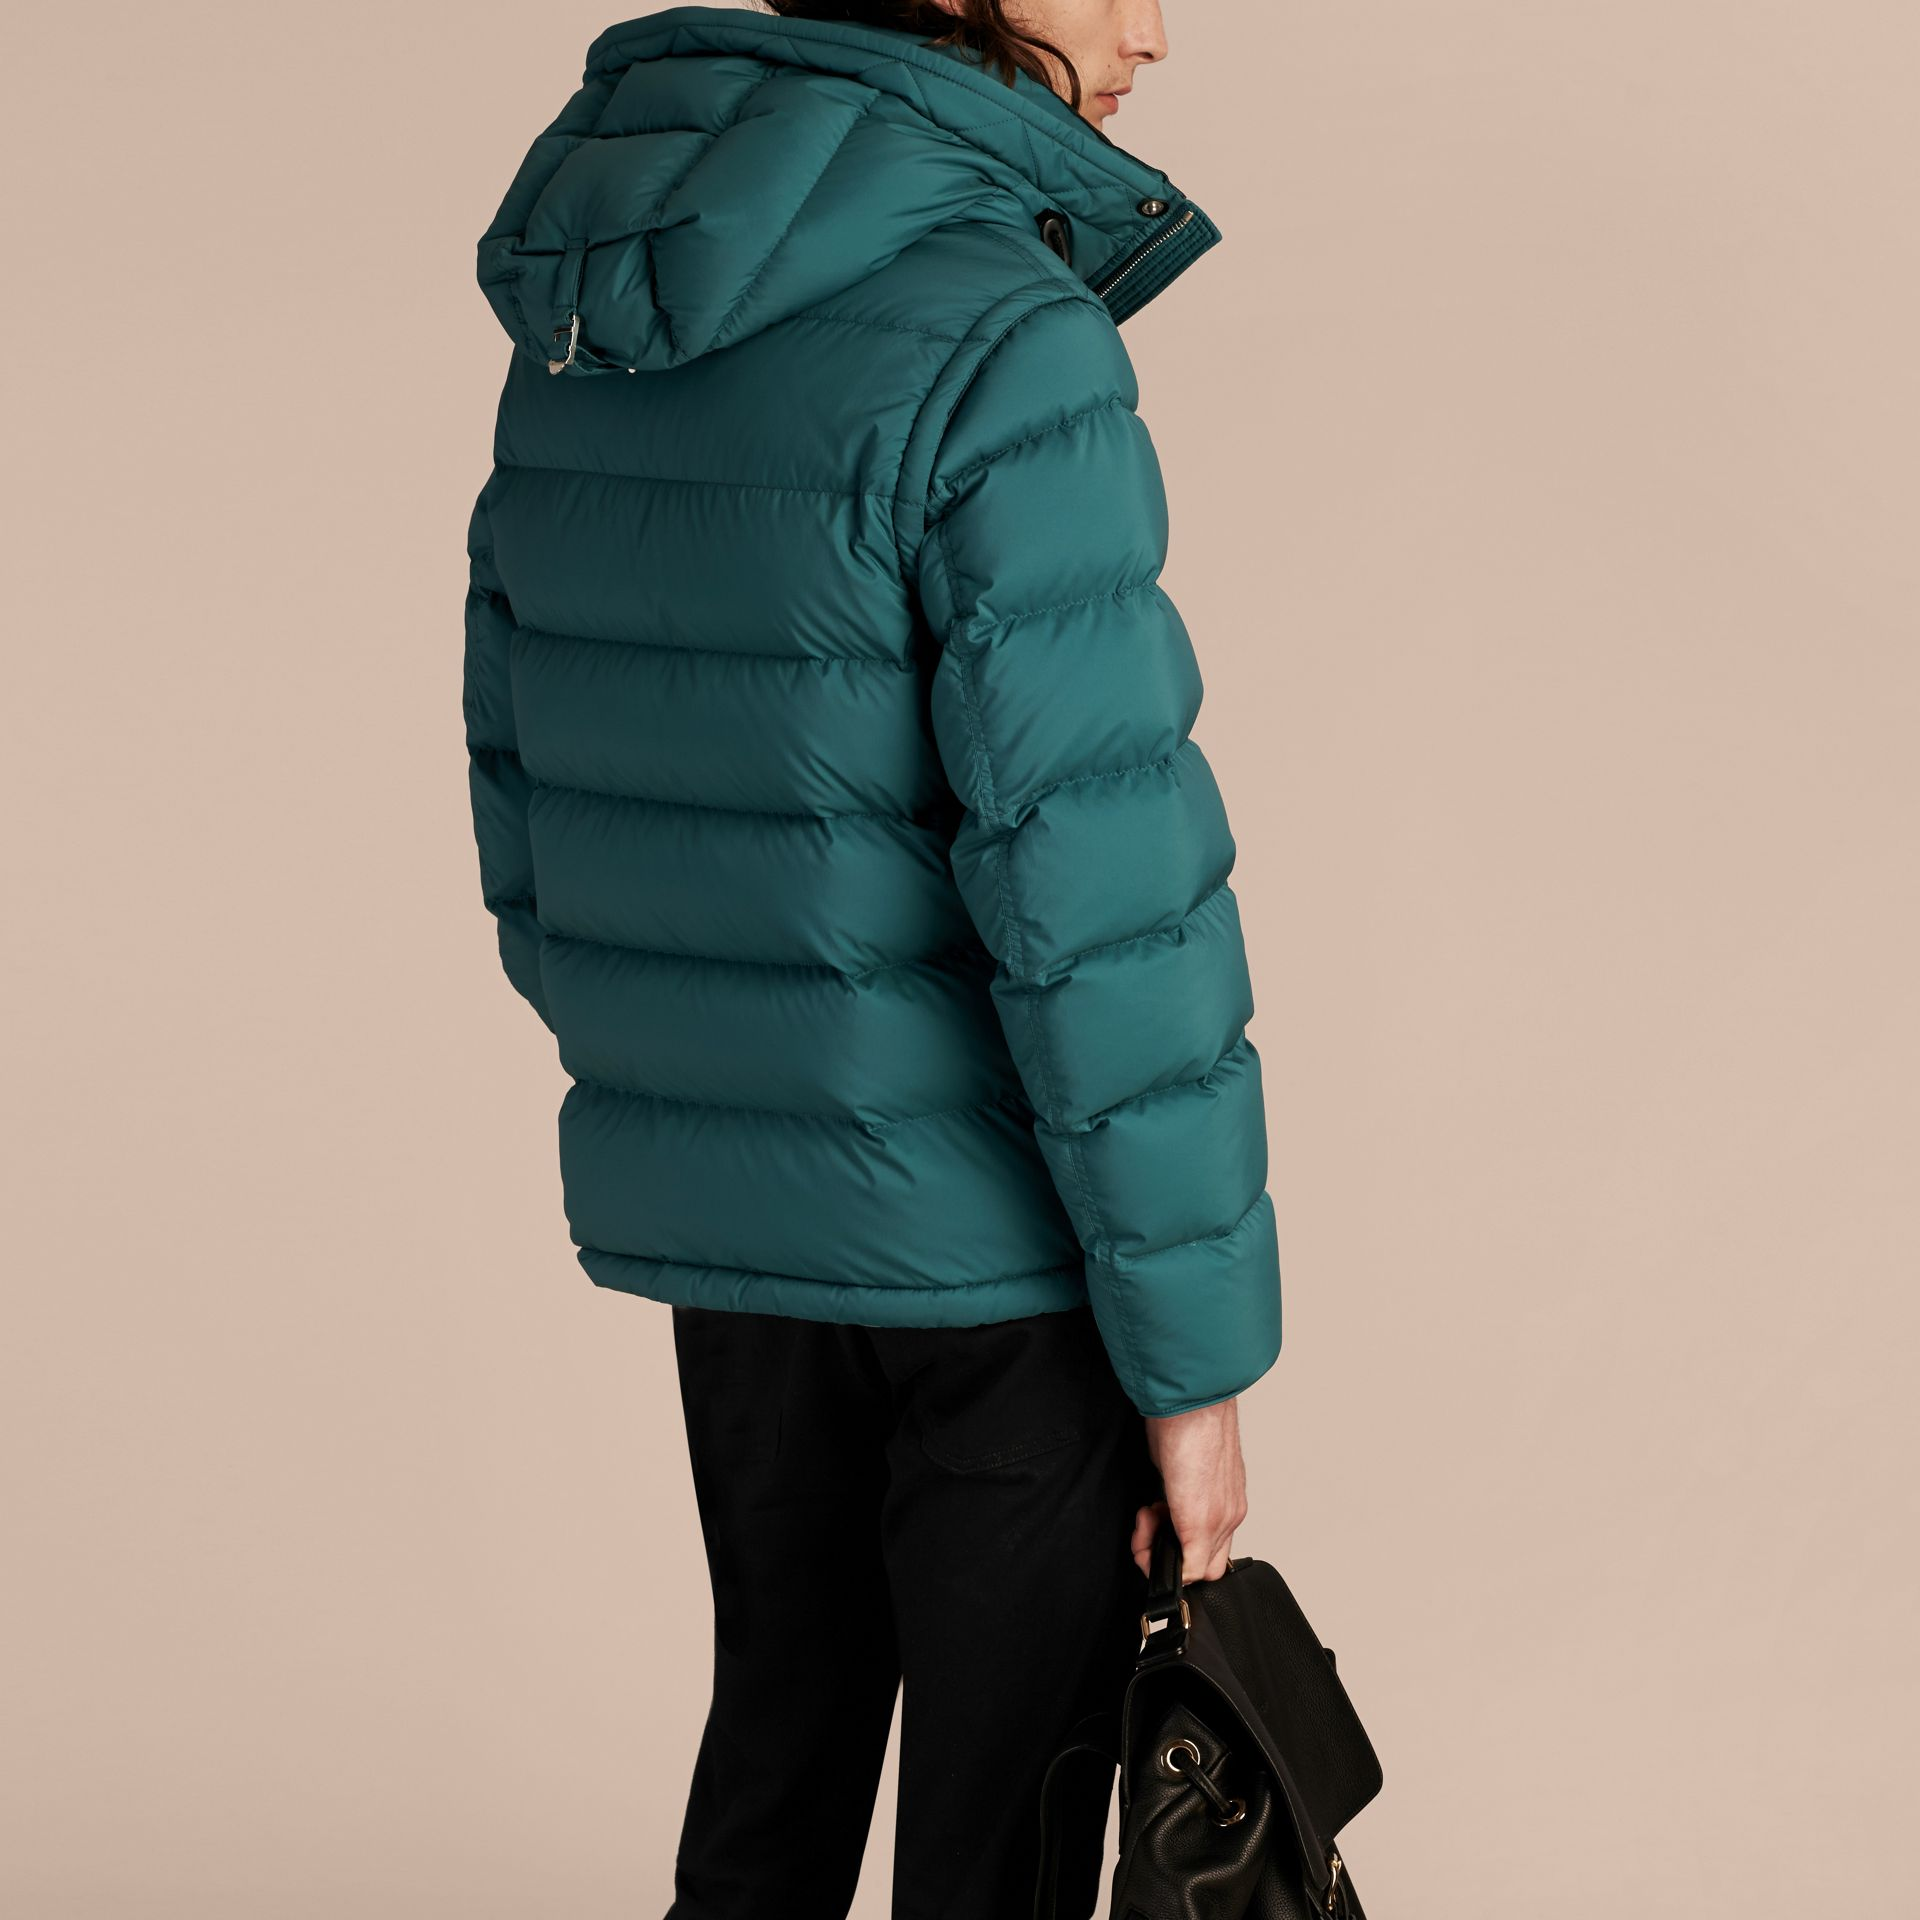 Down-filled Hooded Jacket with Detachable Sleeves in Dusty Teal - gallery image 3